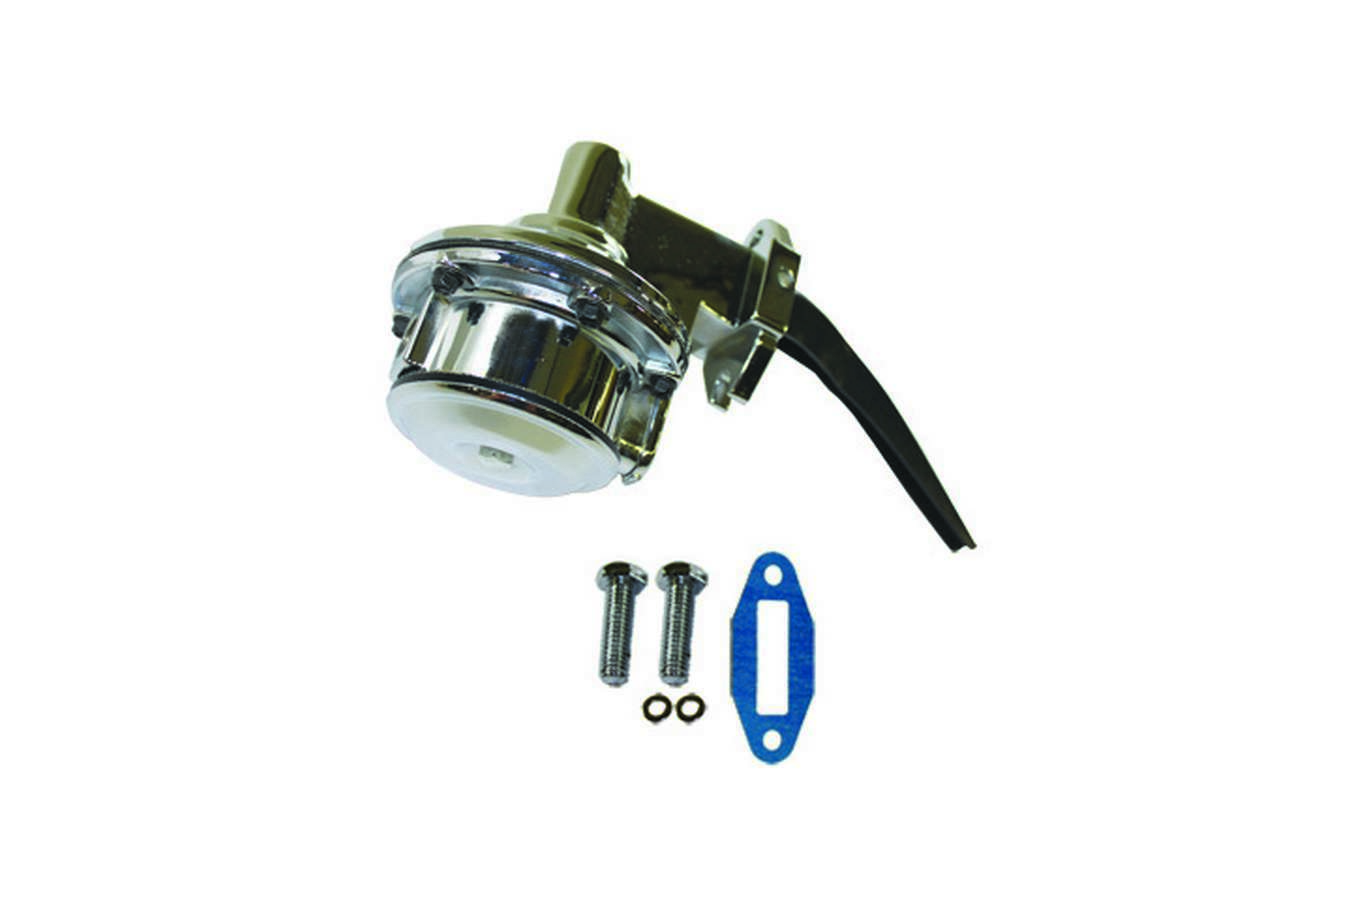 Specialty Products 3158 Fuel Pump, Mechanical, 80 gph, 8 psi, 1/4 in NPT Female Inlet / Outlet, Aluminum, Chrome, Gas, Oldsmobile V8, Each